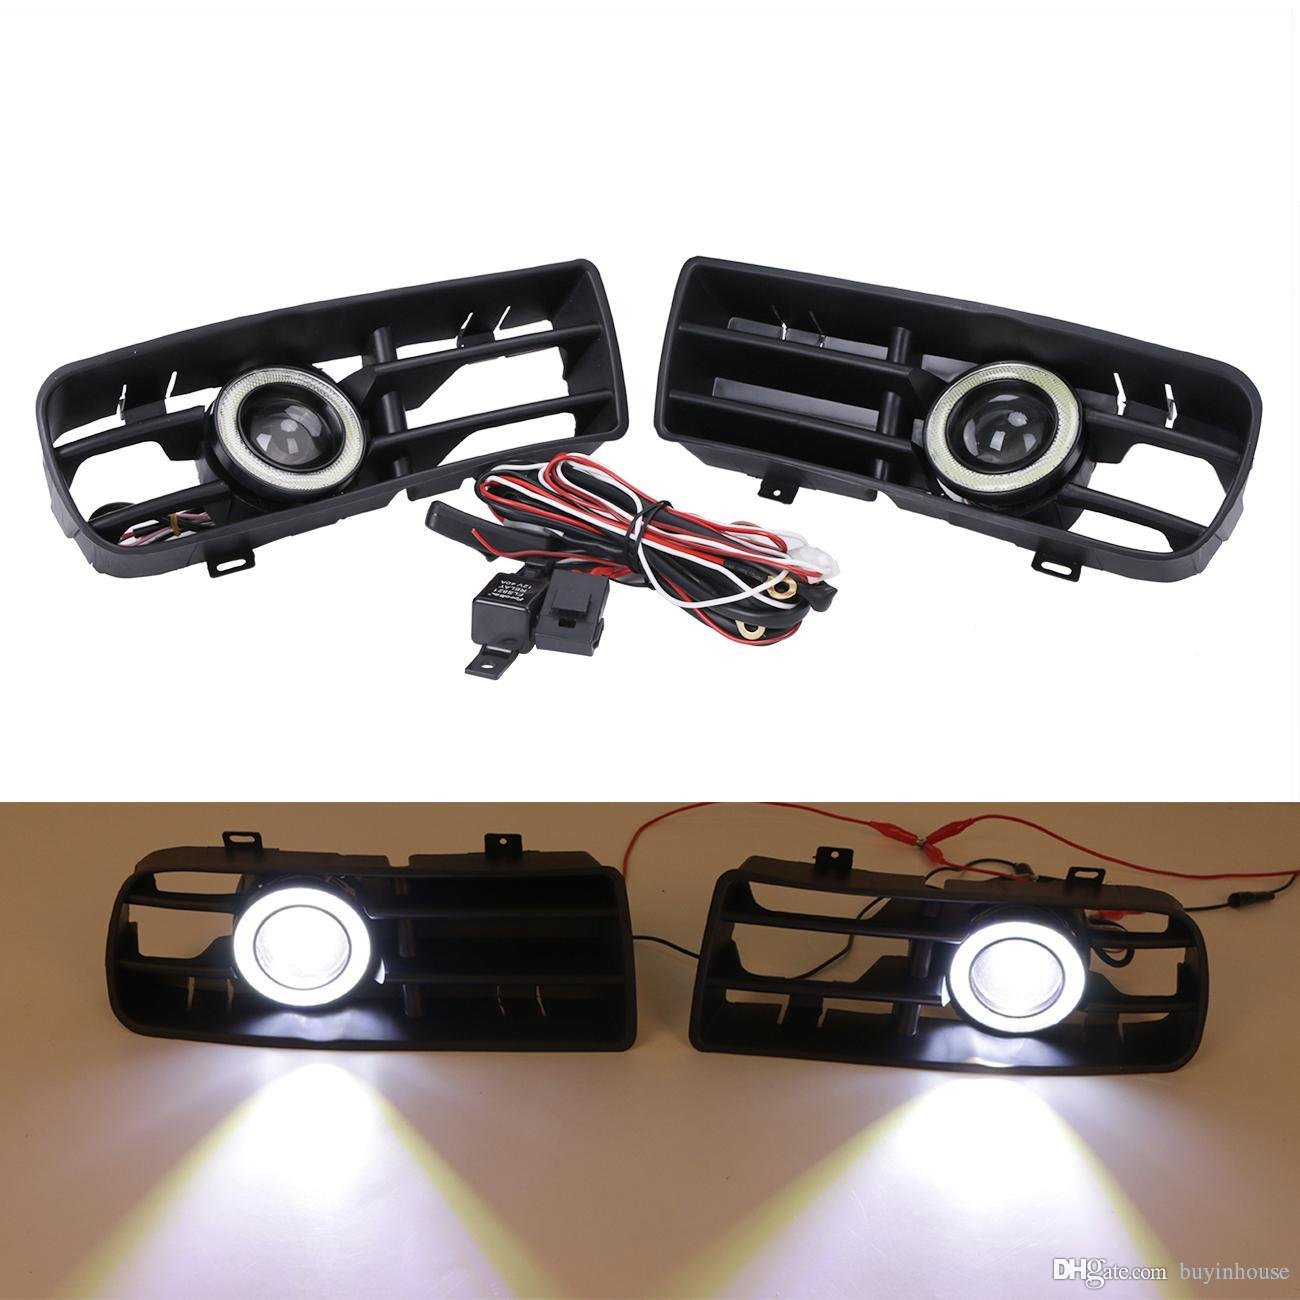 Fog Light Wiring Harness 2017 Gti 33 Diagram Images Mk4 Jetta 2x Led Lights Angel Eyes Front Bumper